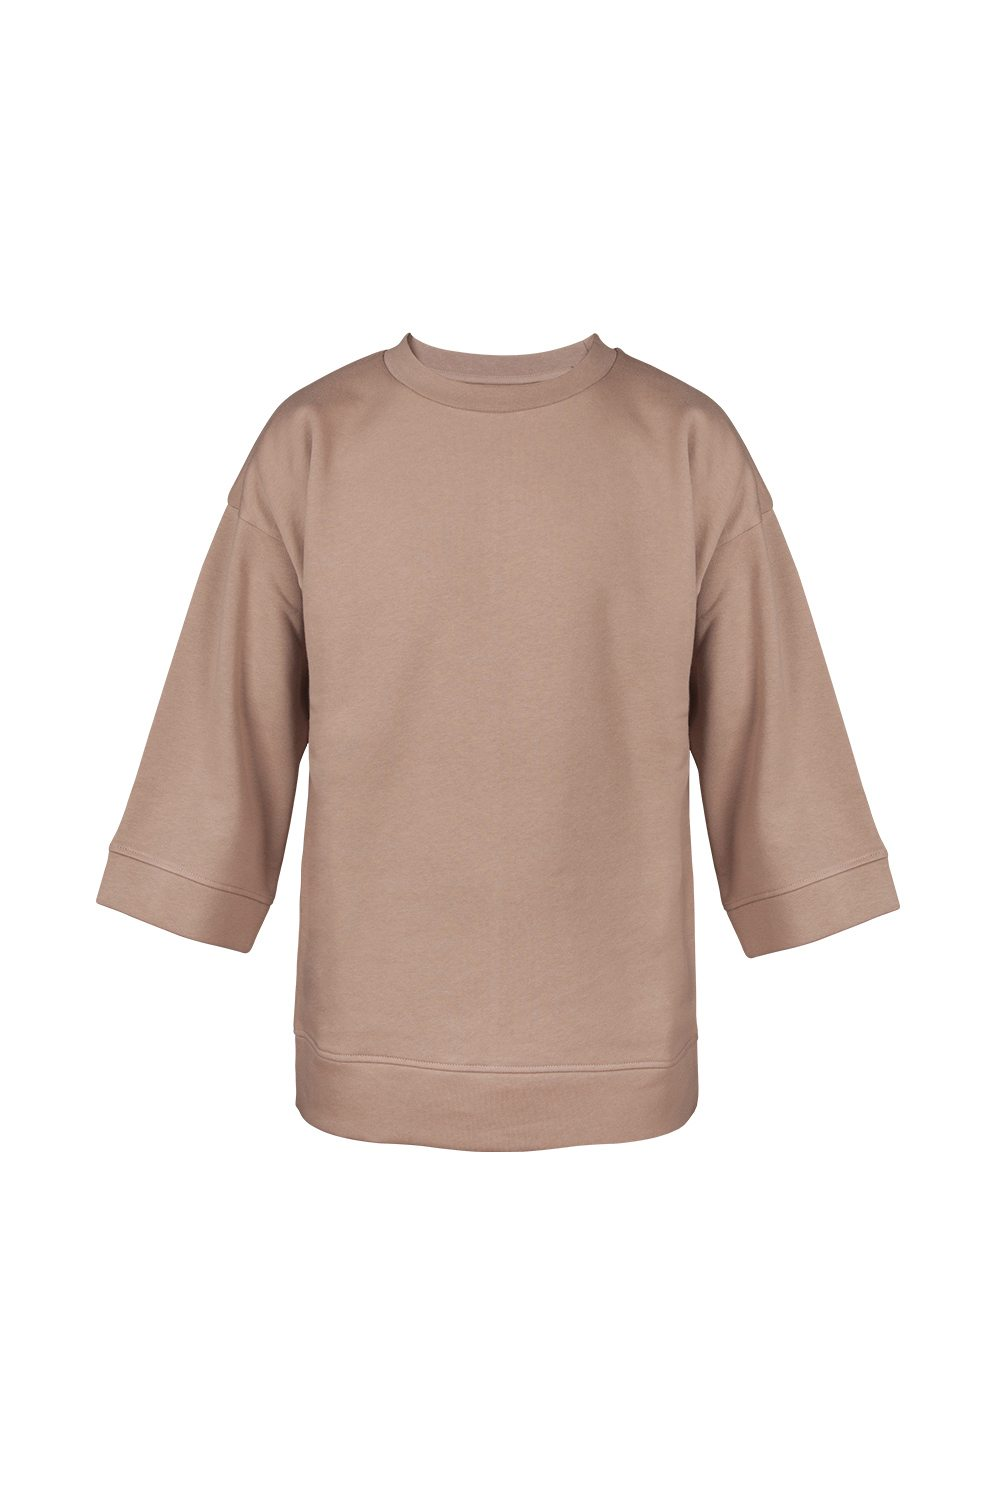 GLADIATOR SWEATER TAUPE